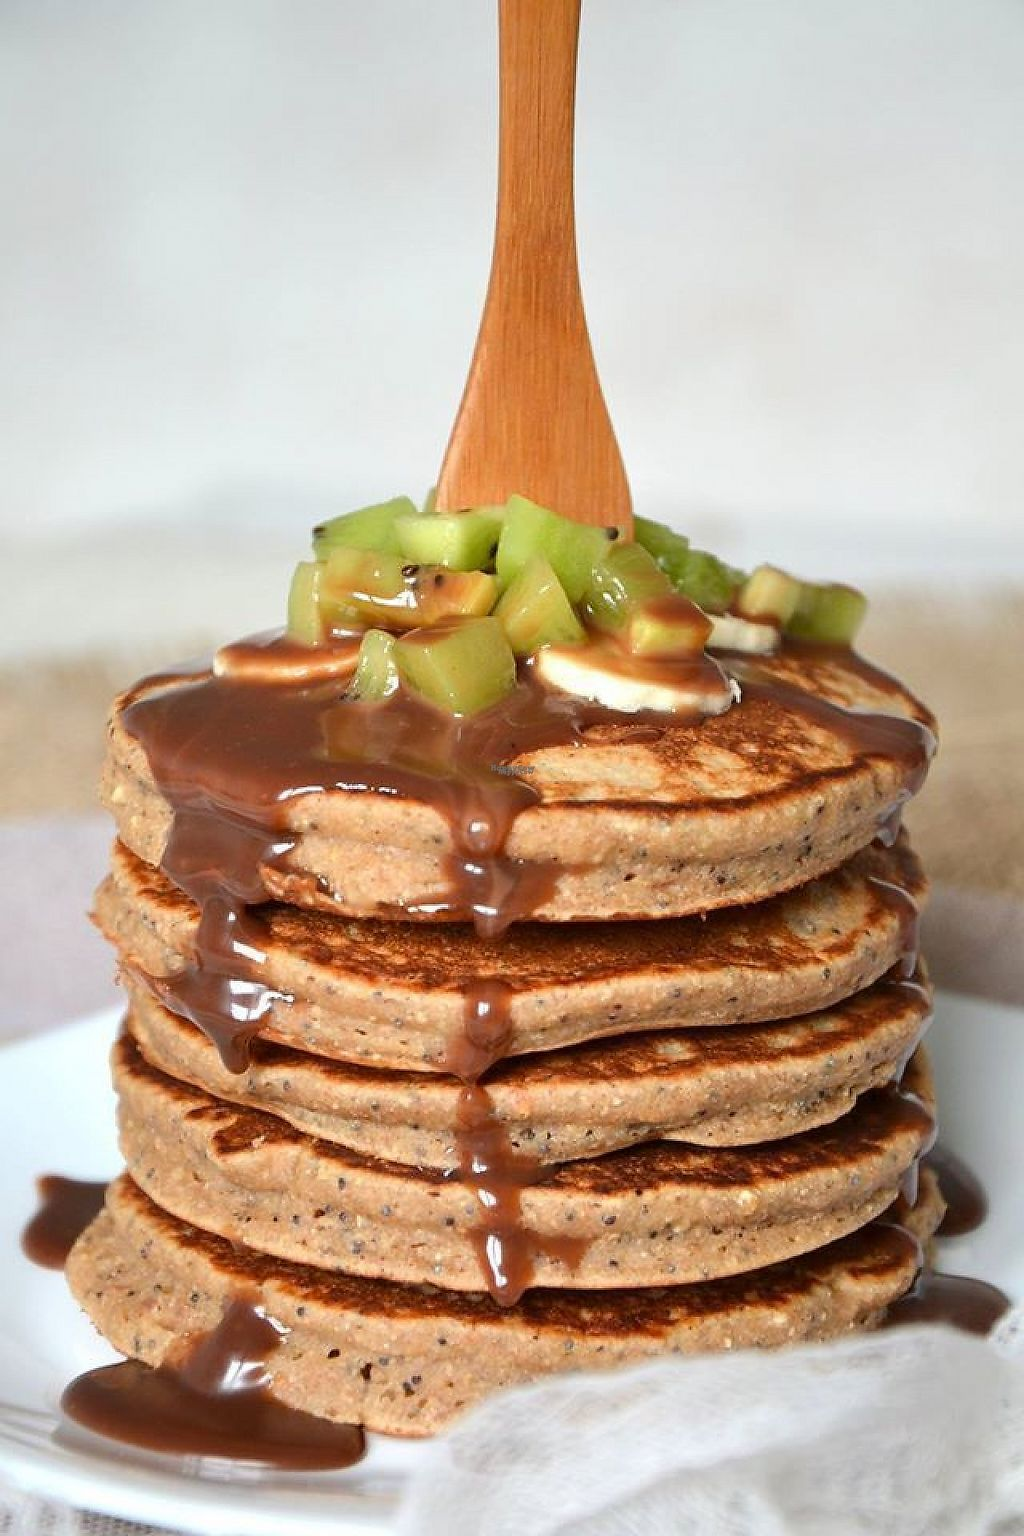 """Photo of La Vie Claire  by <a href=""""/members/profile/community"""">community</a> <br/>vegan hazelnut pancakes  <br/> February 4, 2017  - <a href='/contact/abuse/image/68771/221802'>Report</a>"""